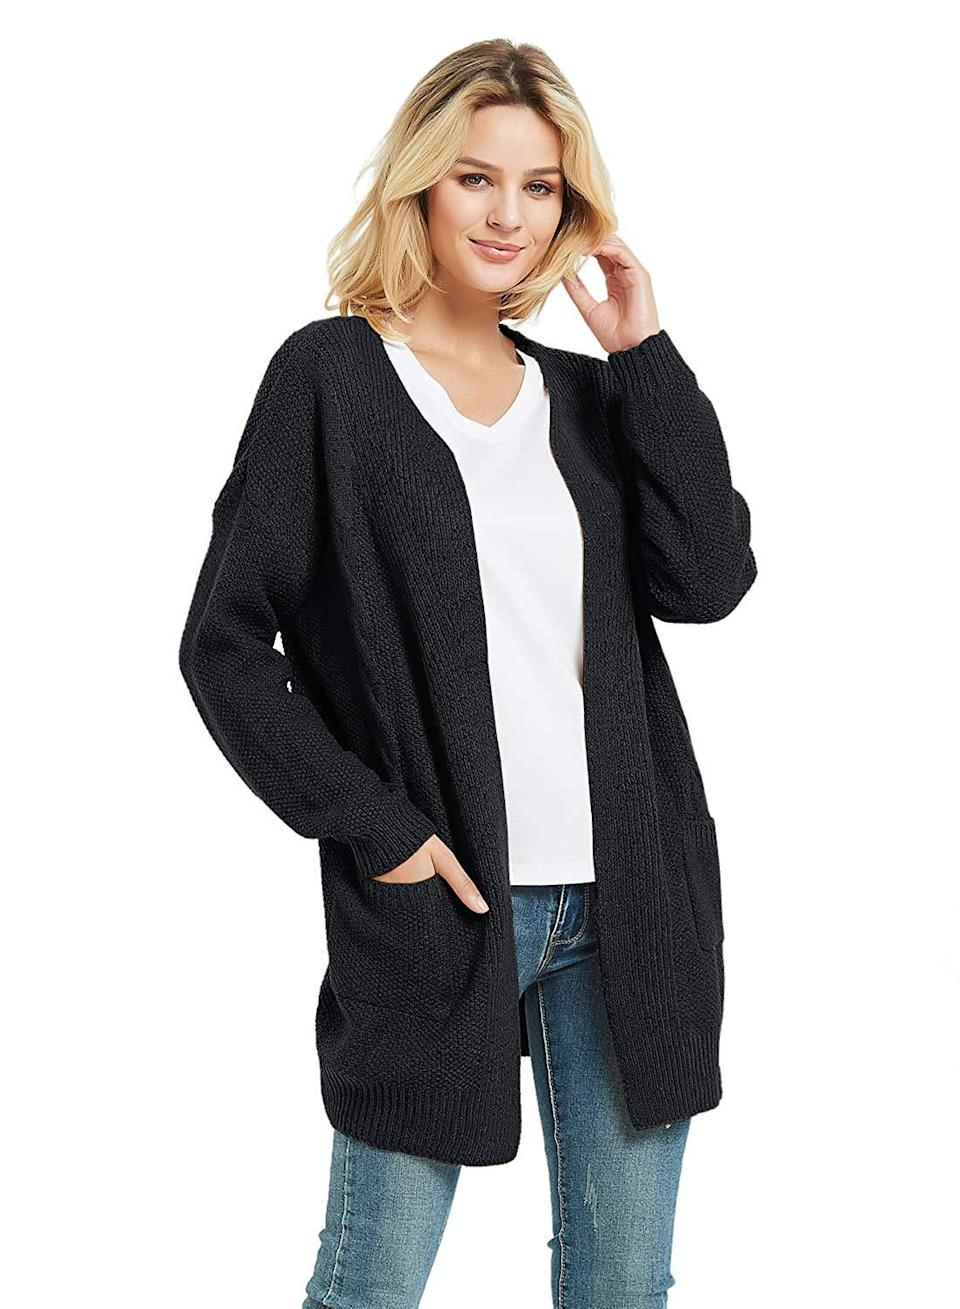 """<a href=""""https://amzn.to/314adz9"""" rel=""""nofollow noopener"""" target=""""_blank"""" data-ylk=""""slk:Cable-Twist Boyfriend Cardigan"""" class=""""link rapid-noclick-resp""""><h3>Cable-Twist Boyfriend Cardigan</h3></a><br><strong>Maddie</strong><br><br><strong>How She Discovered It:</strong> """"Cruising the web for an under-$50, top-rated slouchy sweater I could wear with and layer over just about anything.""""<br><br><strong>Why It's A Hidden Gem: </strong>""""The quality of this sweater is surprisingly high for the low price. Plus, it feels more unique than picking up this season's version from Zara or H&M along with <em>everyone</em> else. It's kinda like my grandma made it or my mom wore...but chic.""""<br><br><strong>futurino</strong> Cable-Twist Long Boyfriend Cardigan, $, available at <a href=""""https://amzn.to/2Vu0Fw0"""" rel=""""nofollow noopener"""" target=""""_blank"""" data-ylk=""""slk:Amazon"""" class=""""link rapid-noclick-resp"""">Amazon</a>"""